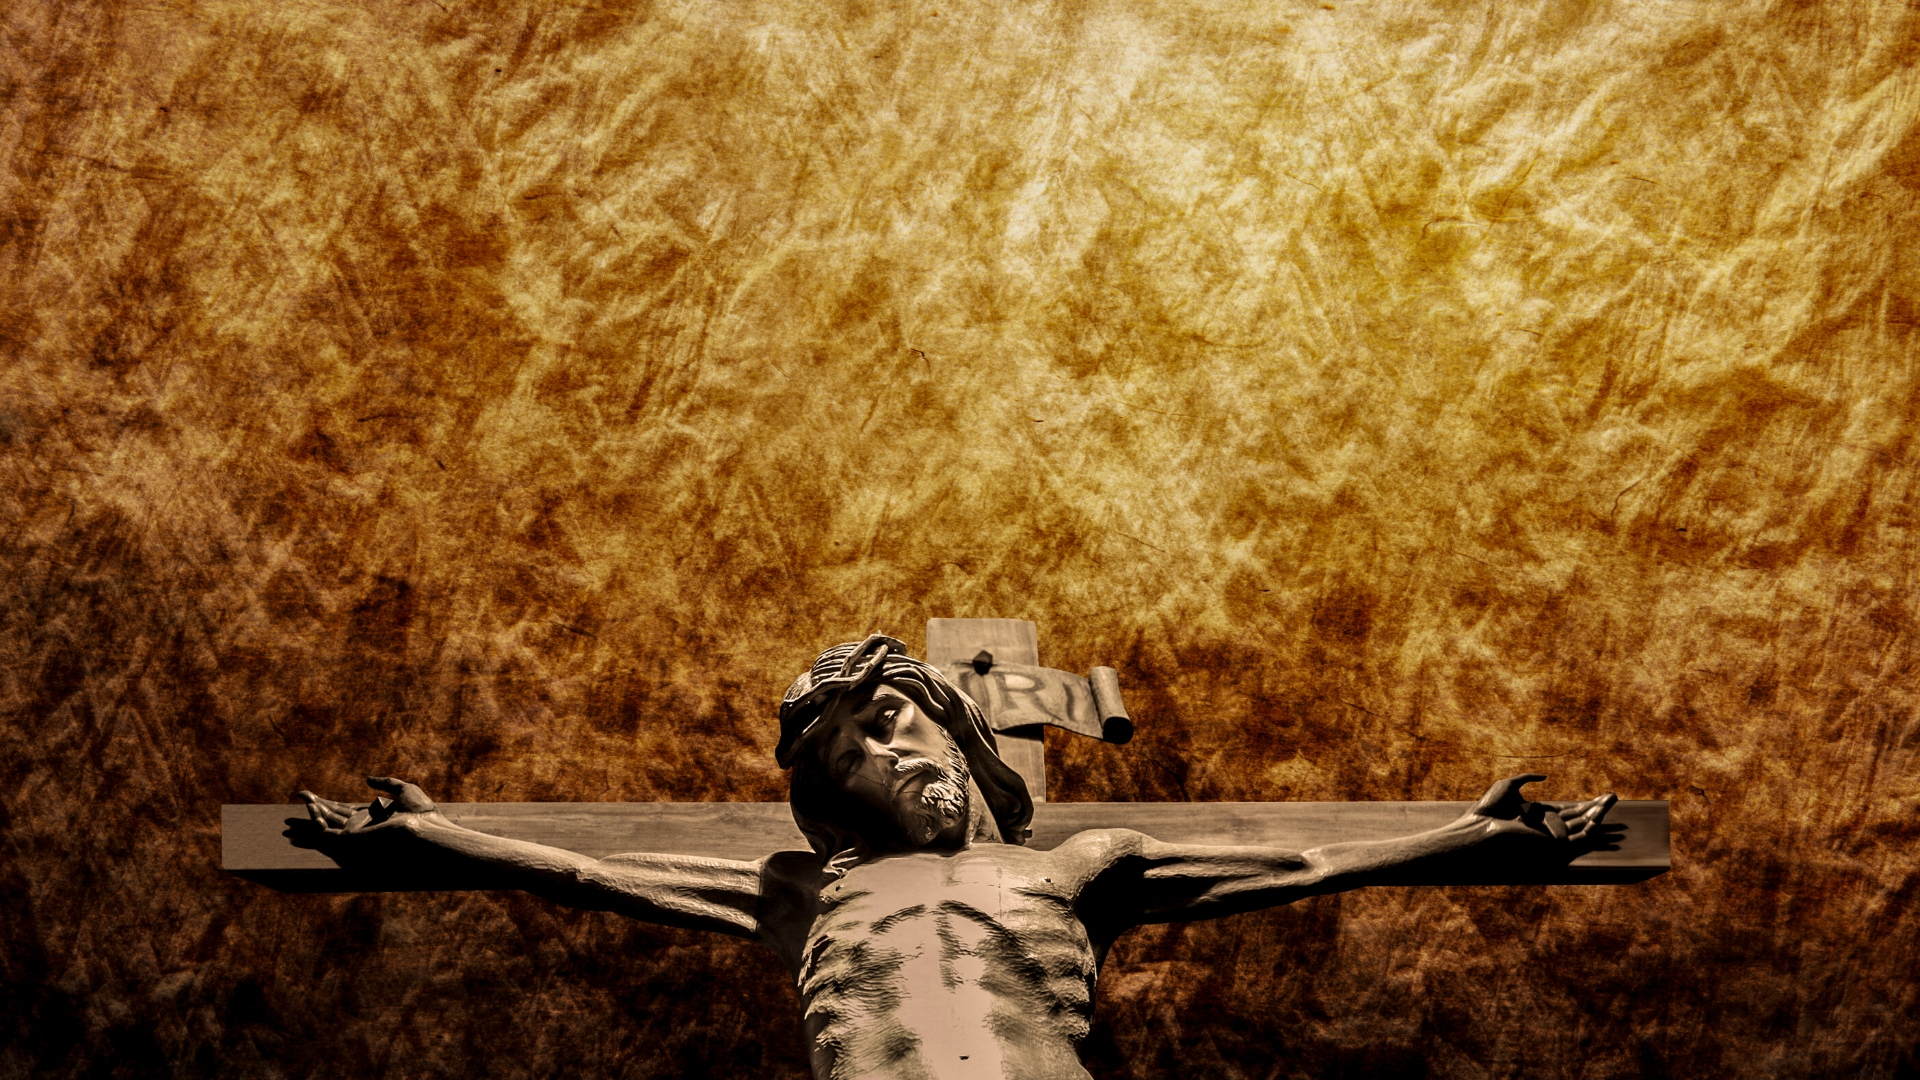 The Death of Christ: Jesus on the Cross - Background of heat shimmer in orange and brown